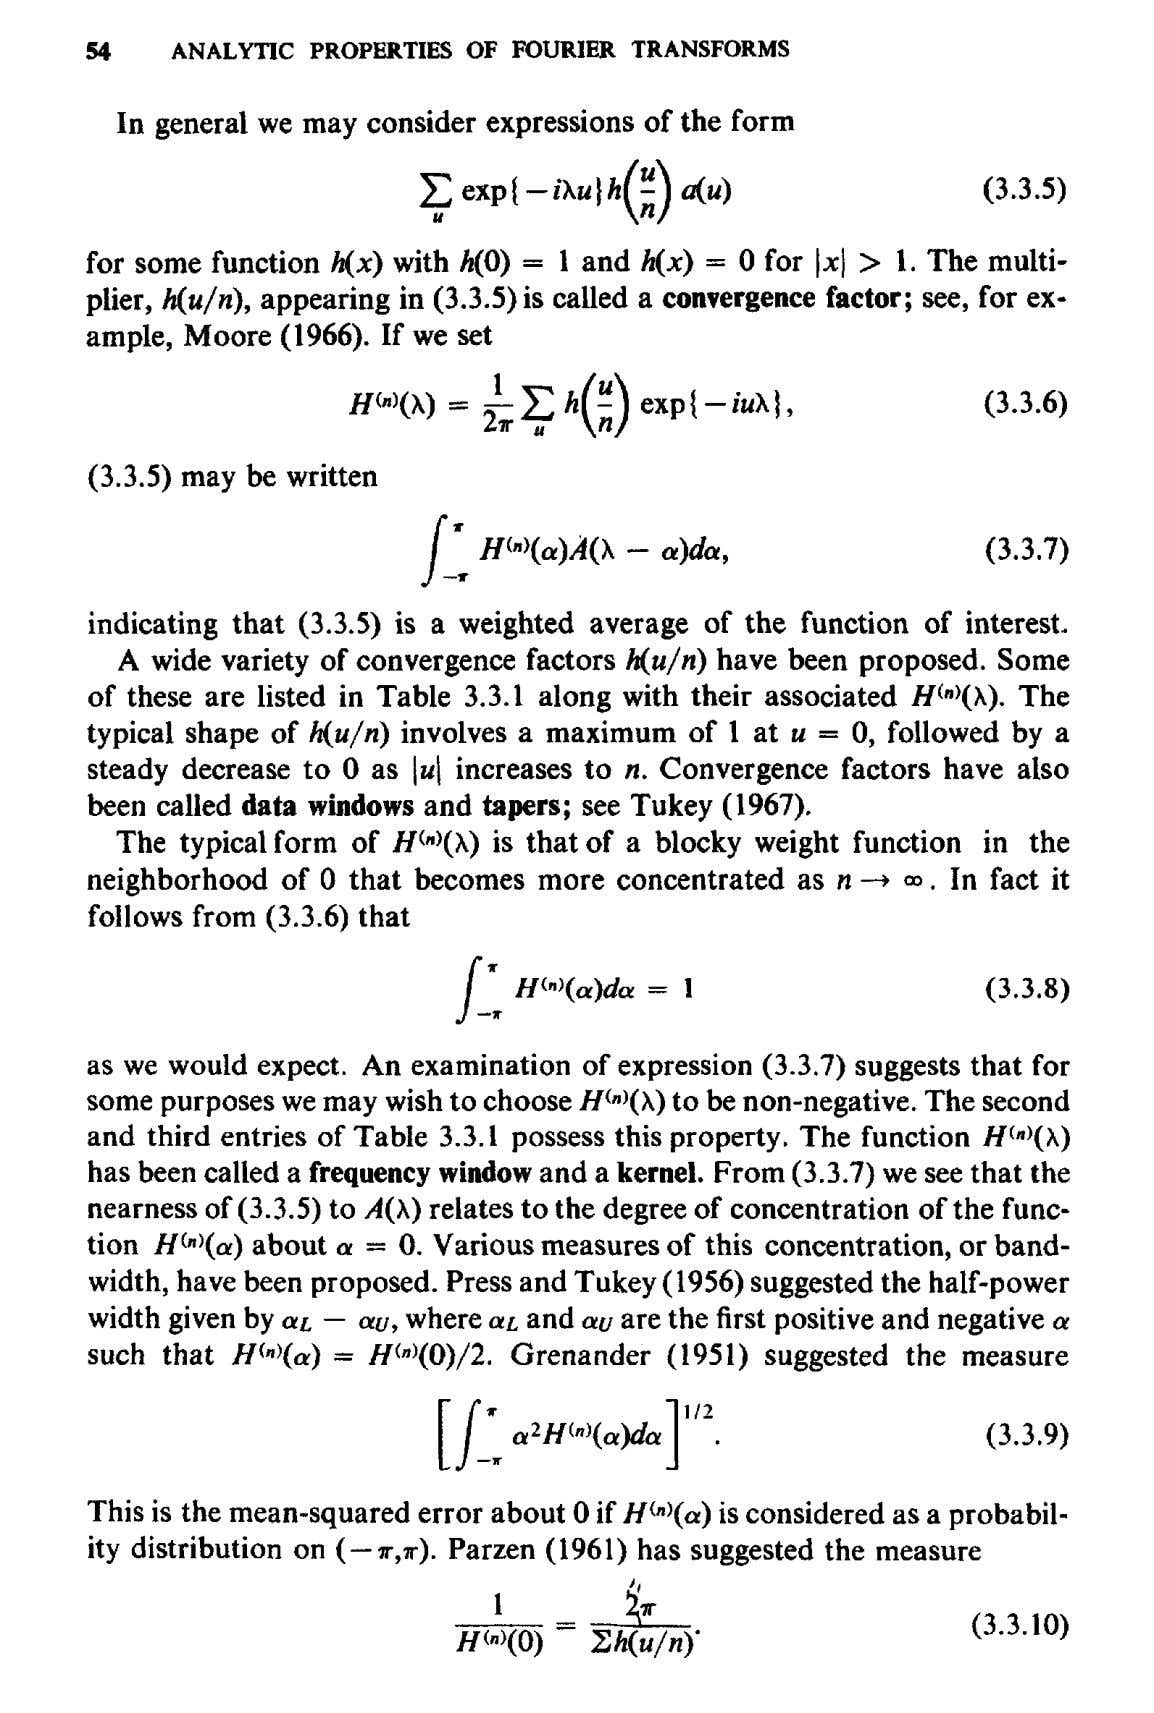 54 ANALYTIC PROPERTIES OF FOURIER TRANSFORMS In general we may consider expressions of the form